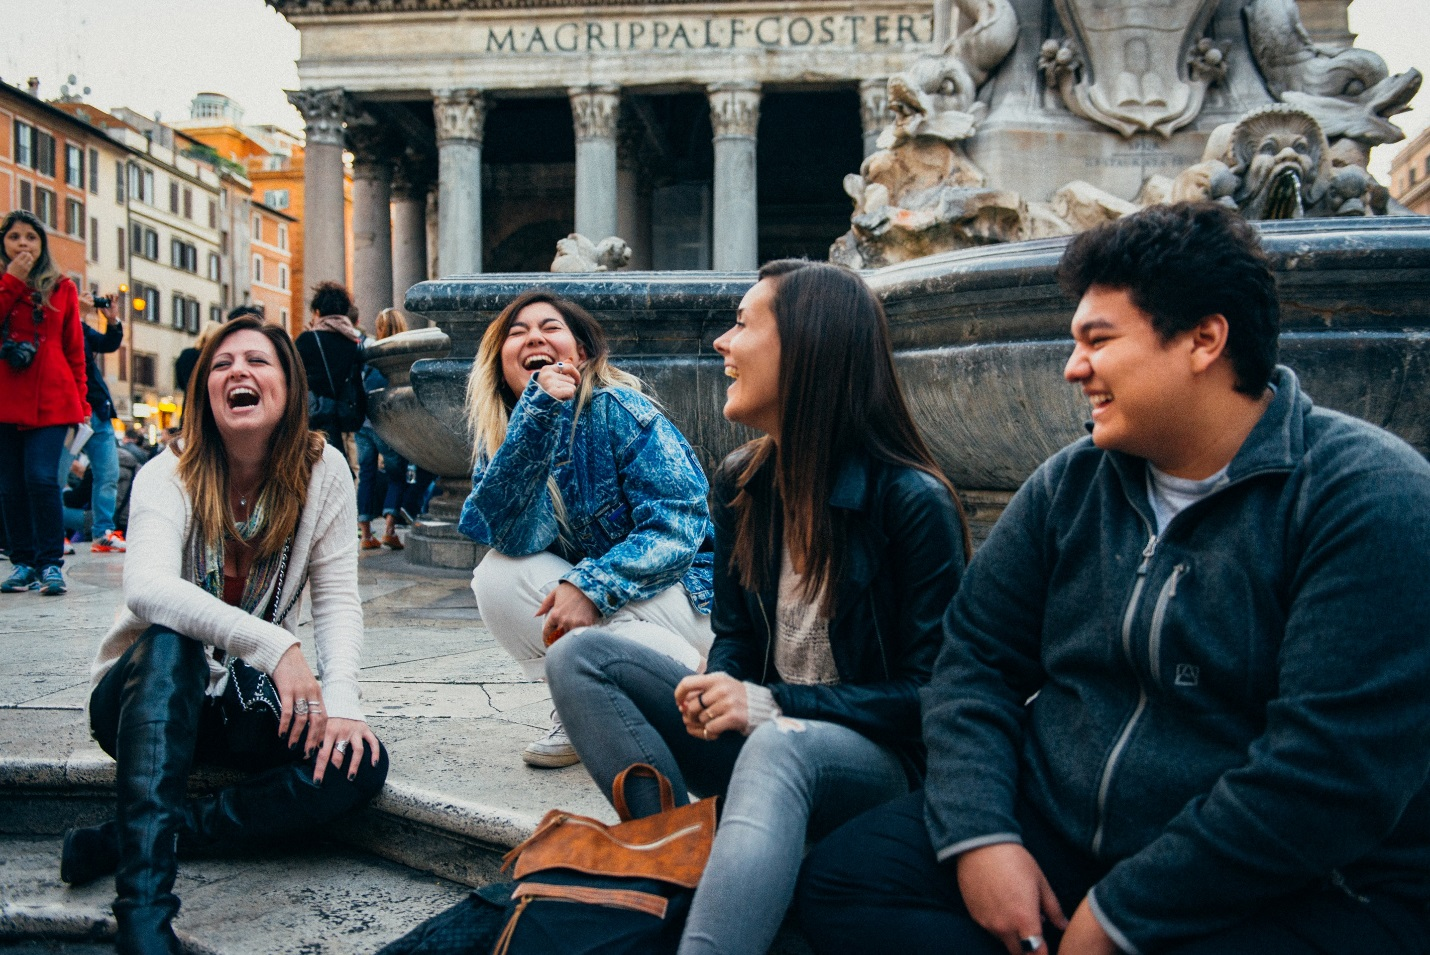 Business school in Italy, Study abroad in Italy, How the Study Abroad Experience Makes You A Stronger Leader, Reasons to study abroad, John cabot university graduation ceremony, international student in Rome